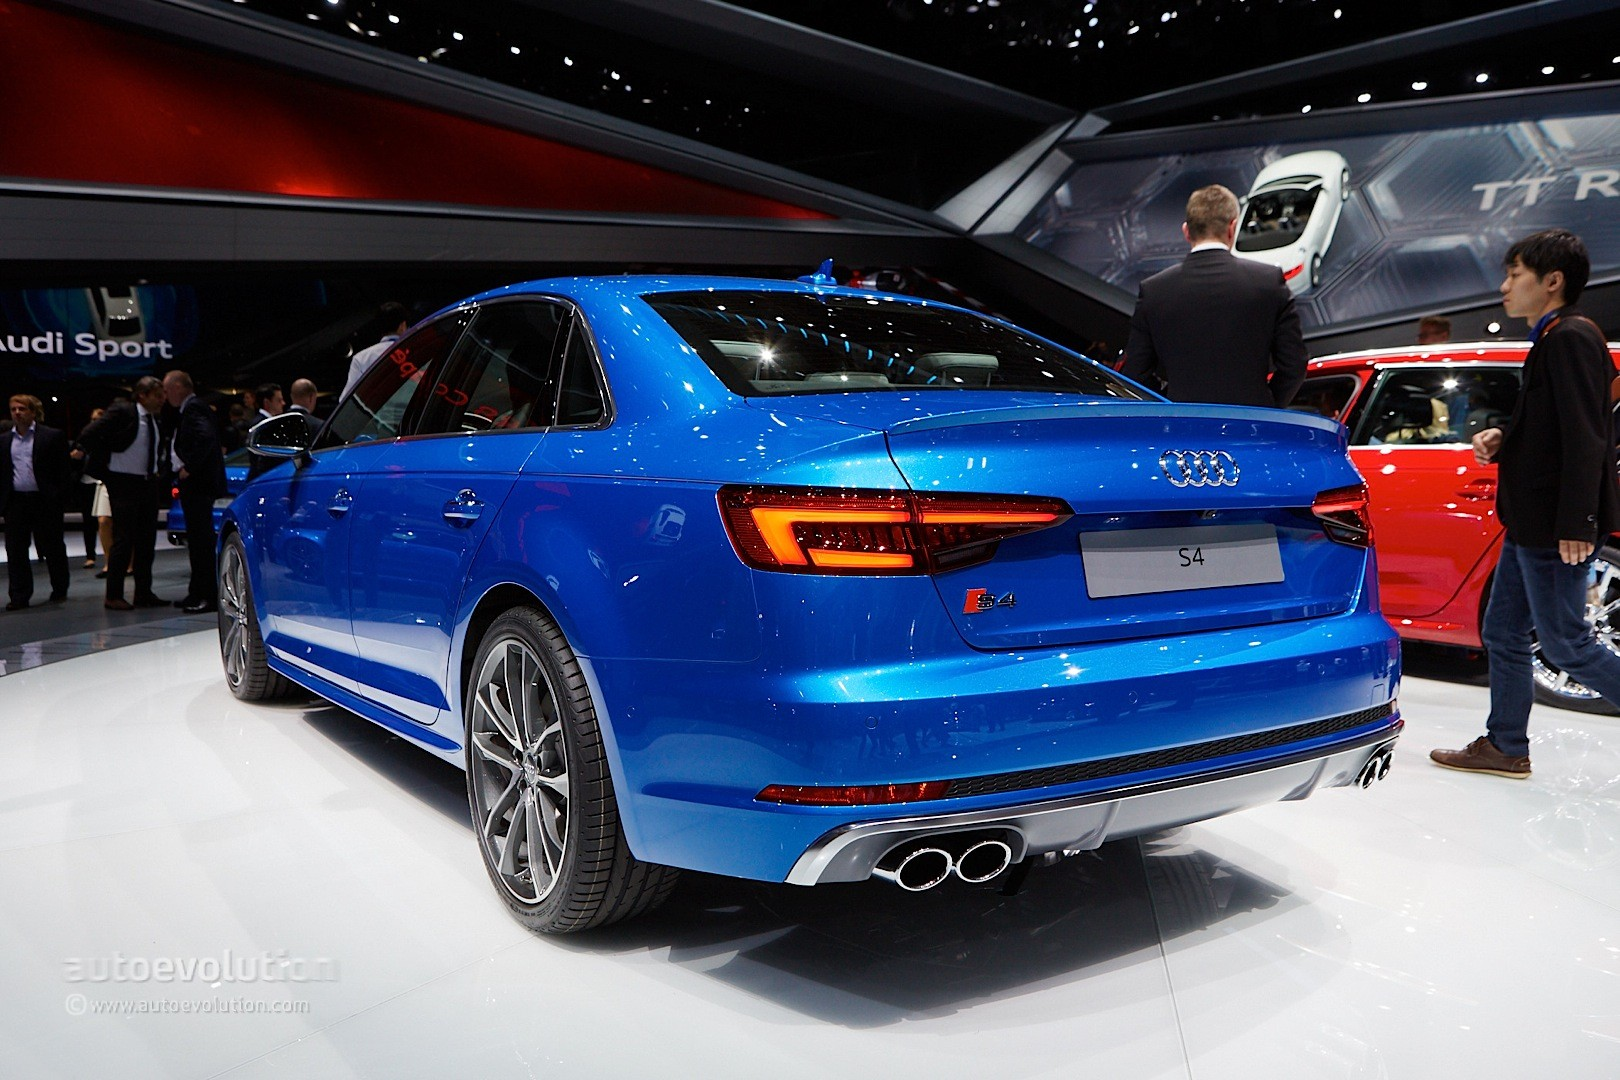 all new audi s4 sedan debuts with 3 liter turbocharged engine in frankfurt autoevolution. Black Bedroom Furniture Sets. Home Design Ideas